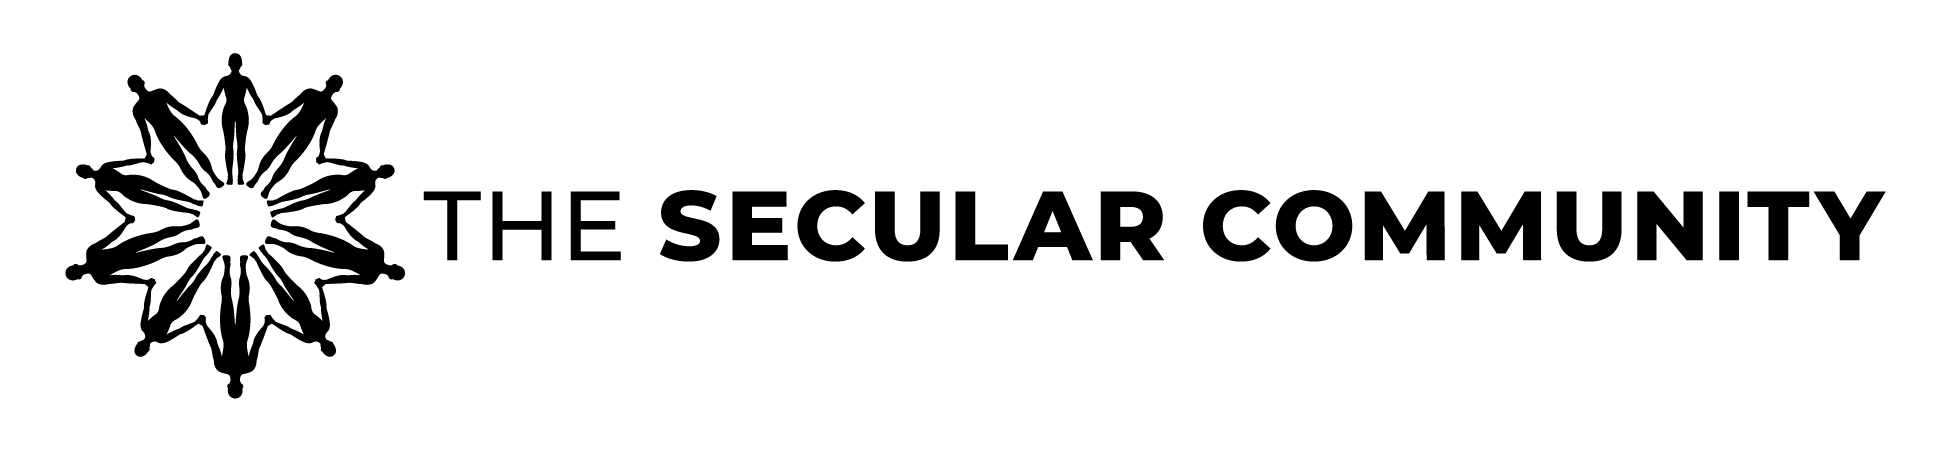 The Secular Community logo